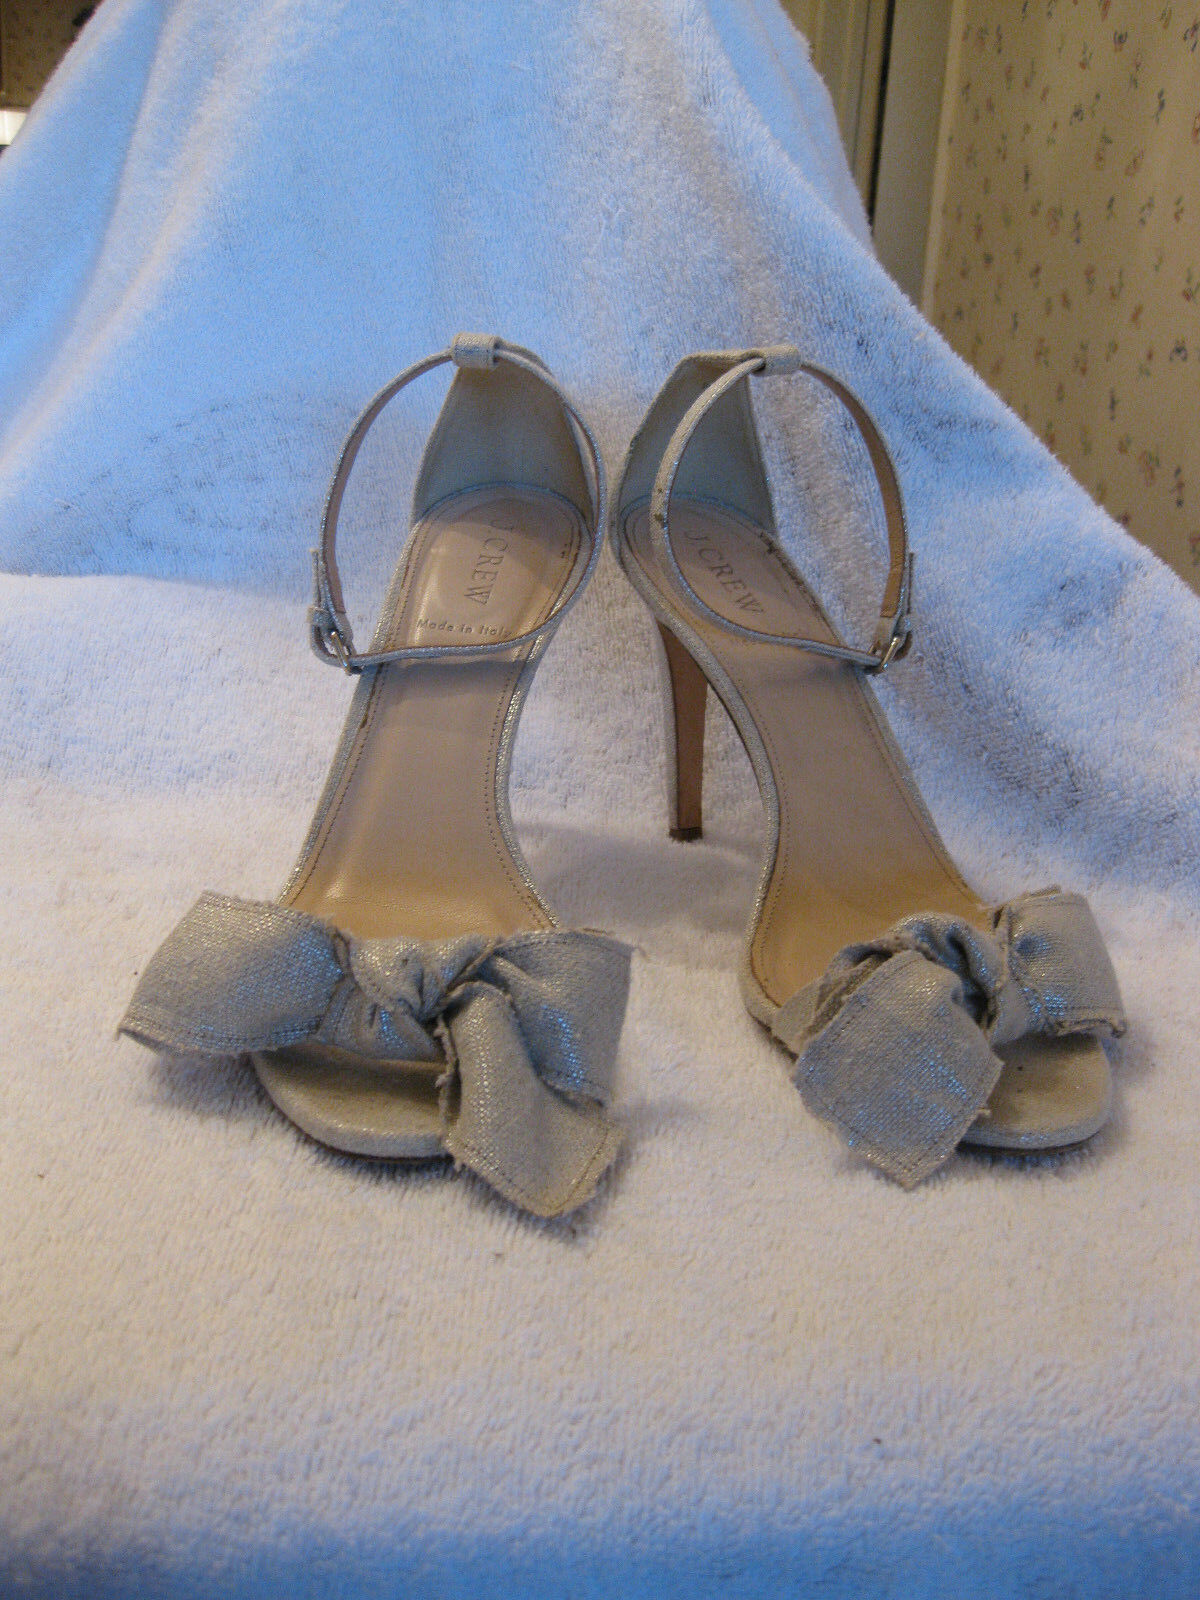 J Crew 9 Leder and Metallic Linen Bow High Heel Sandales b7918 Sold Out 238